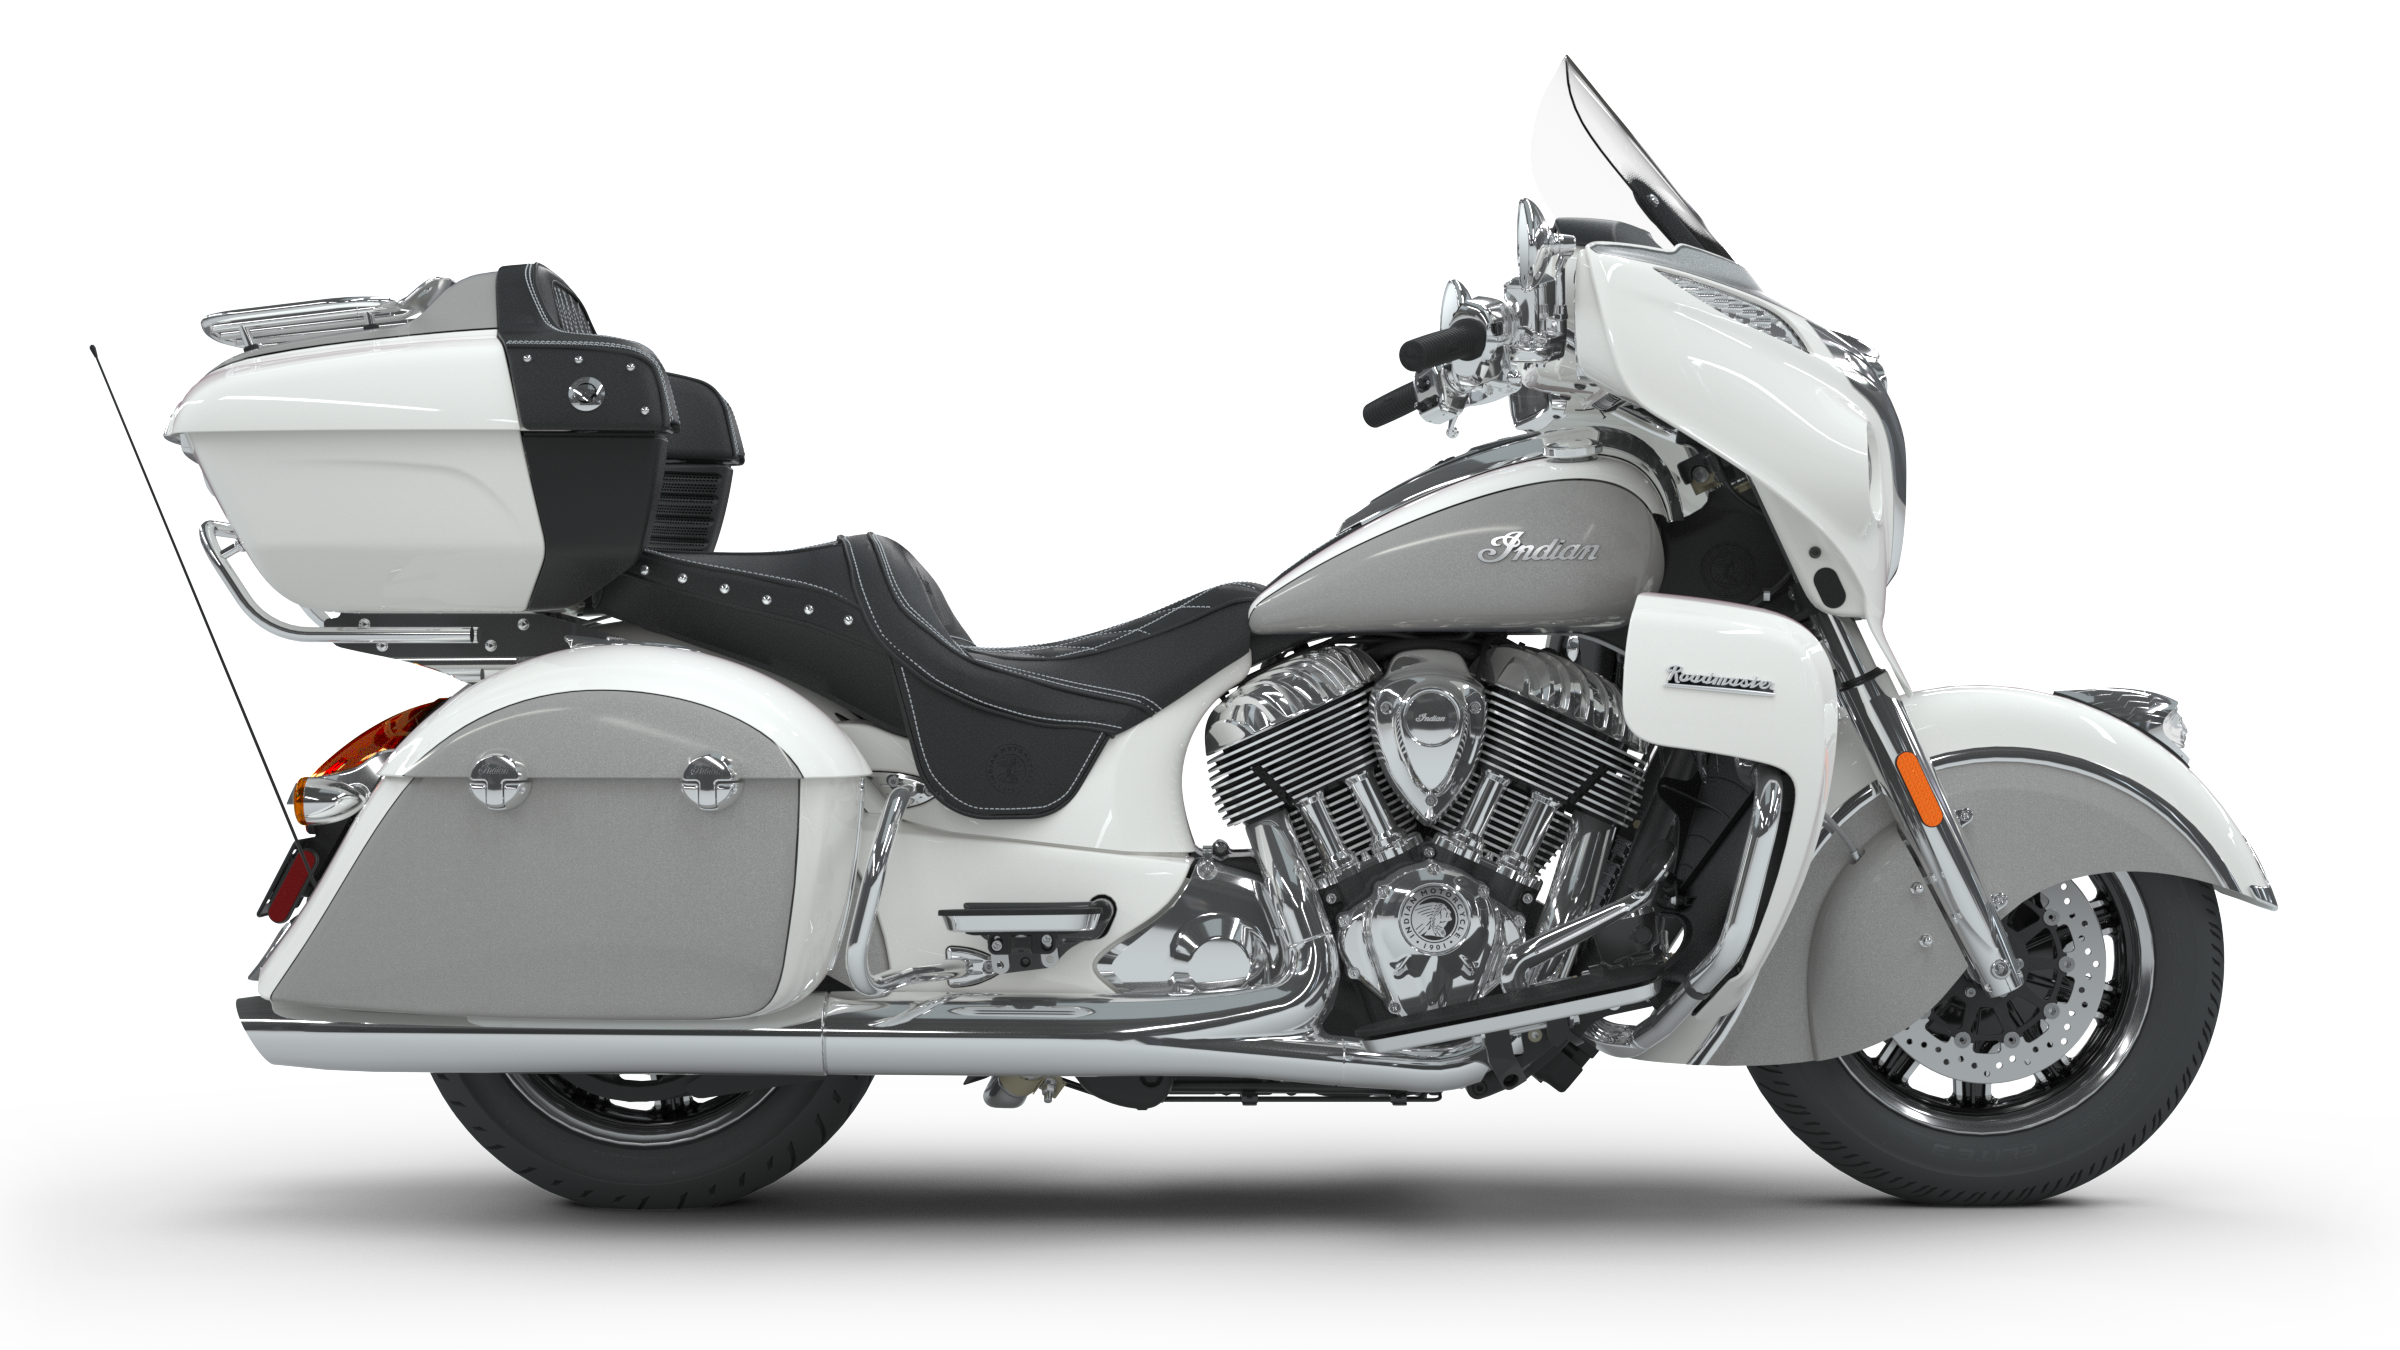 2018 Roadmaster Pearl White/ Star Silver - Indian Motorcycle